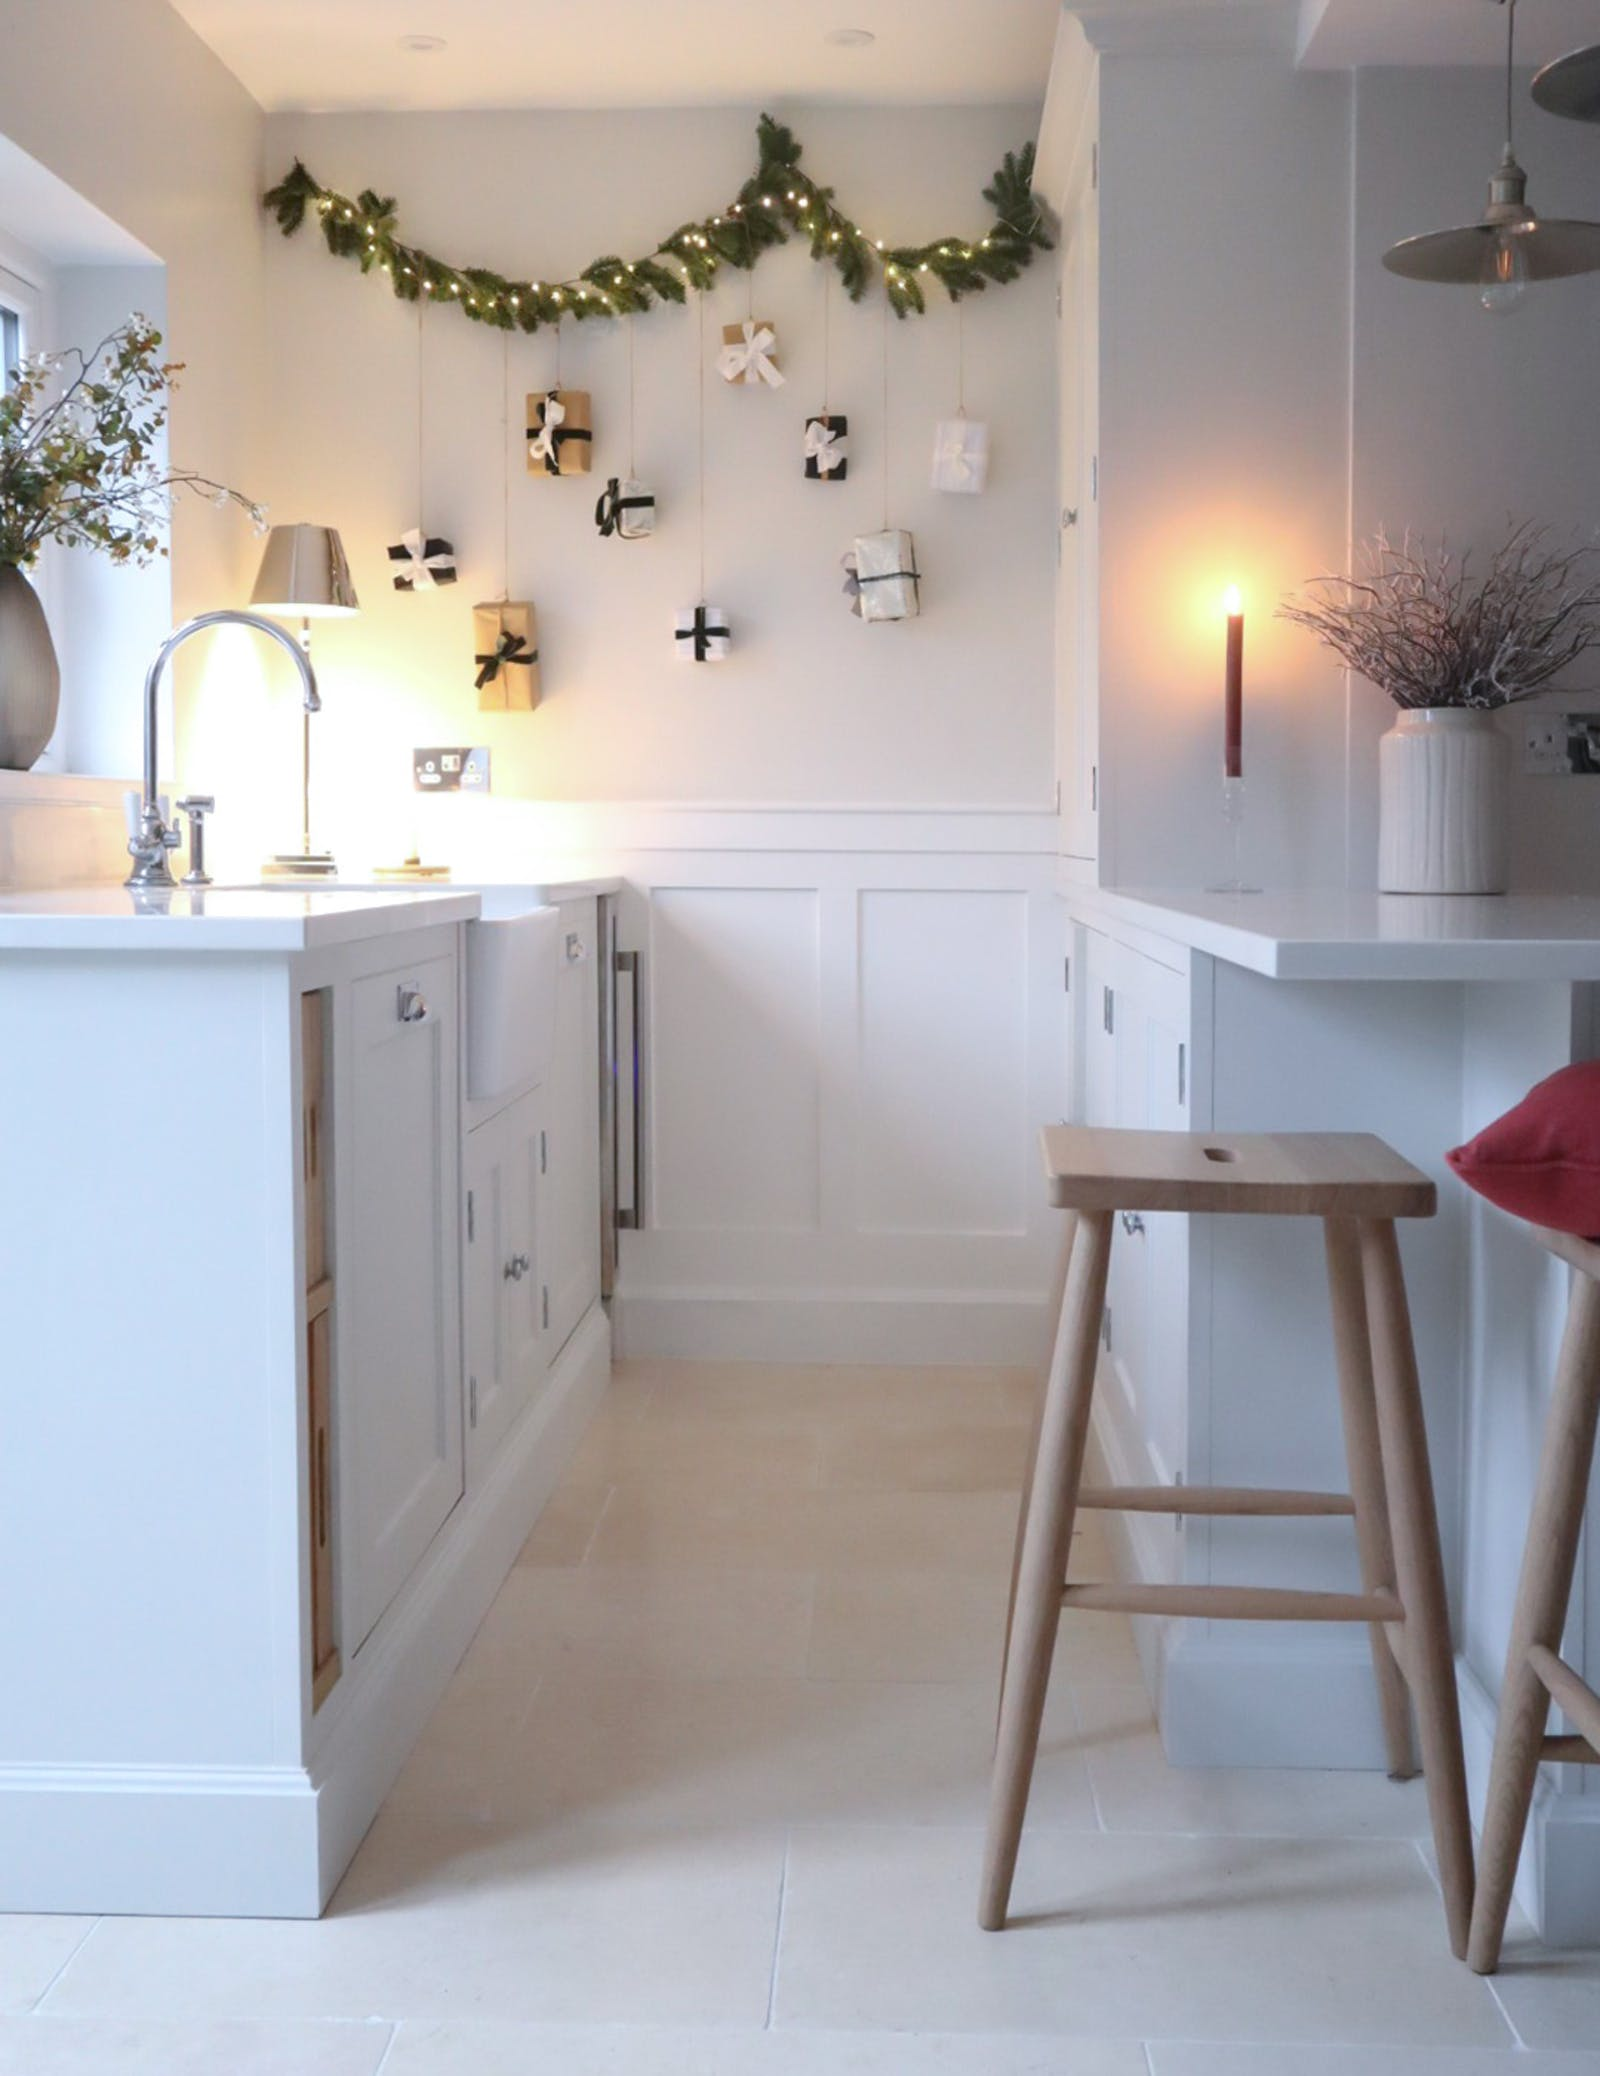 Kitchen decorated in Christmas garlands, presents and lights